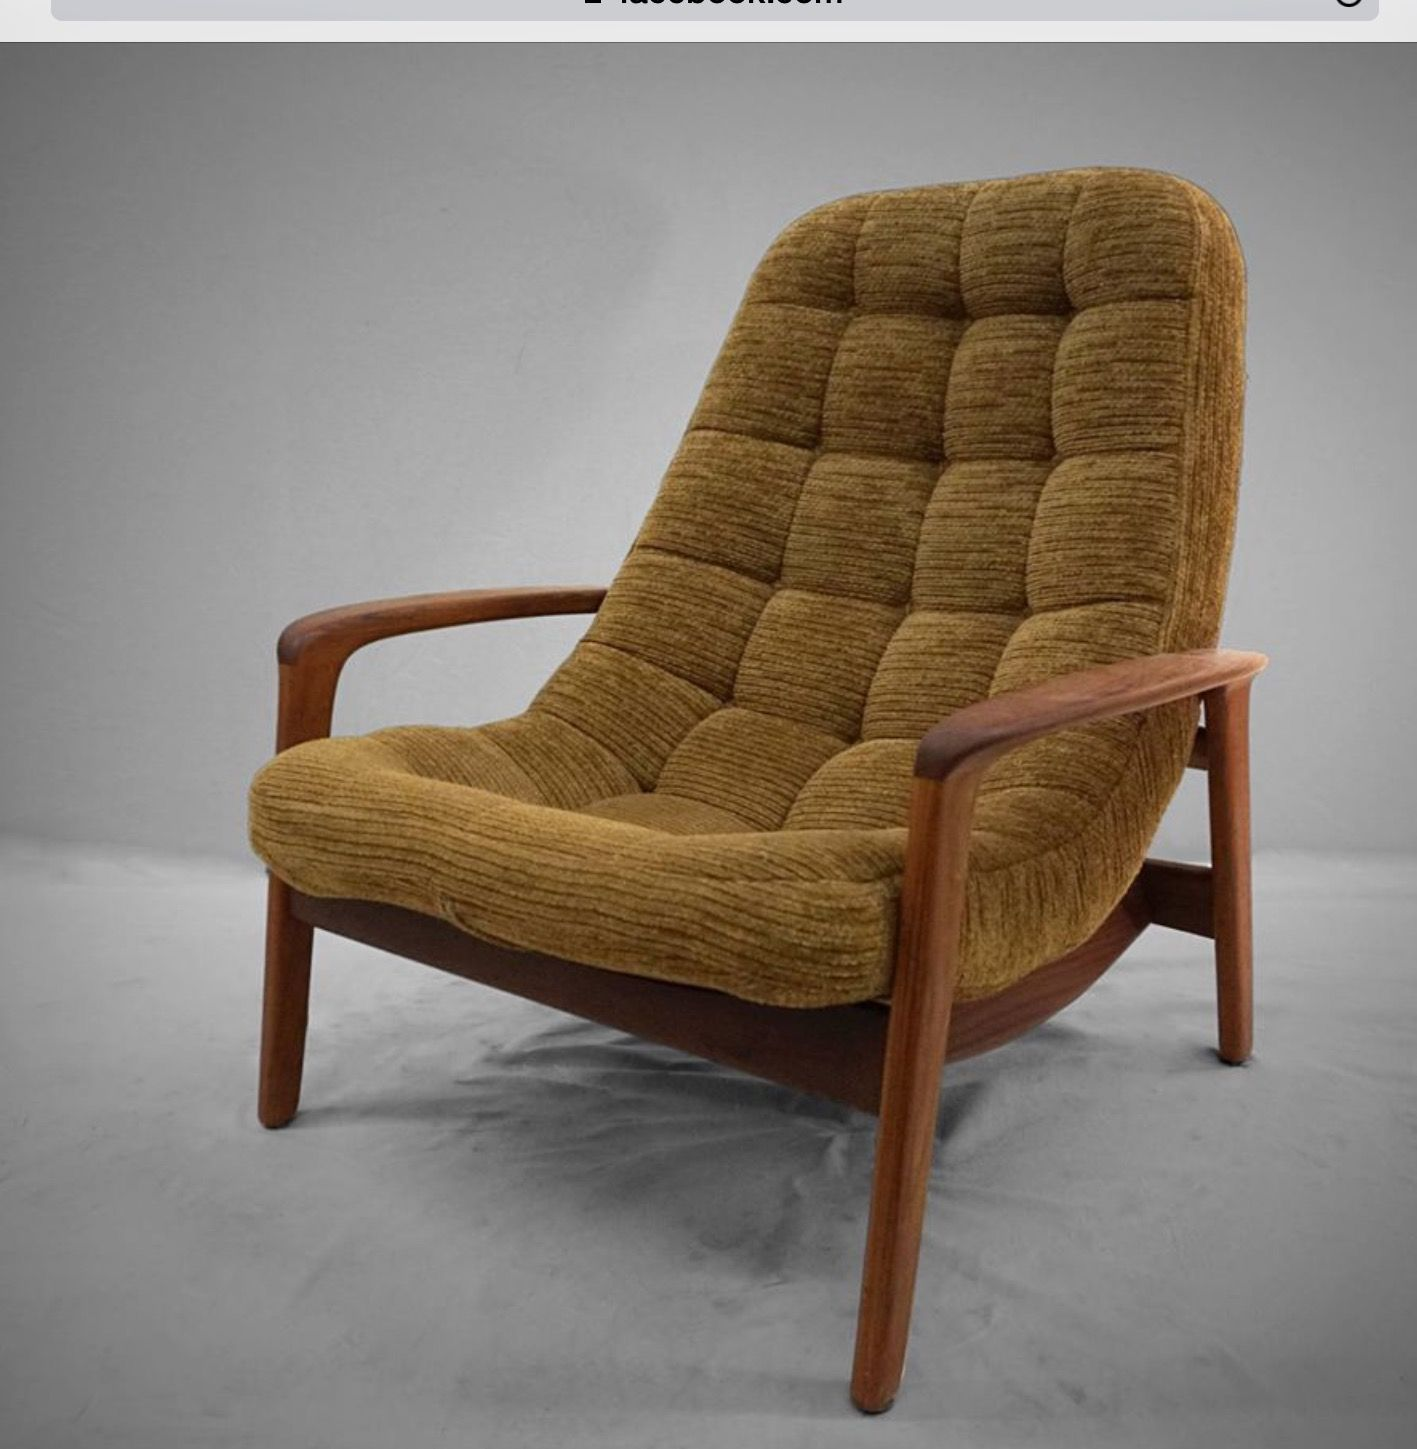 R. Huber chair | Mid Century Mod: Seating | Pinterest | Mid century ...